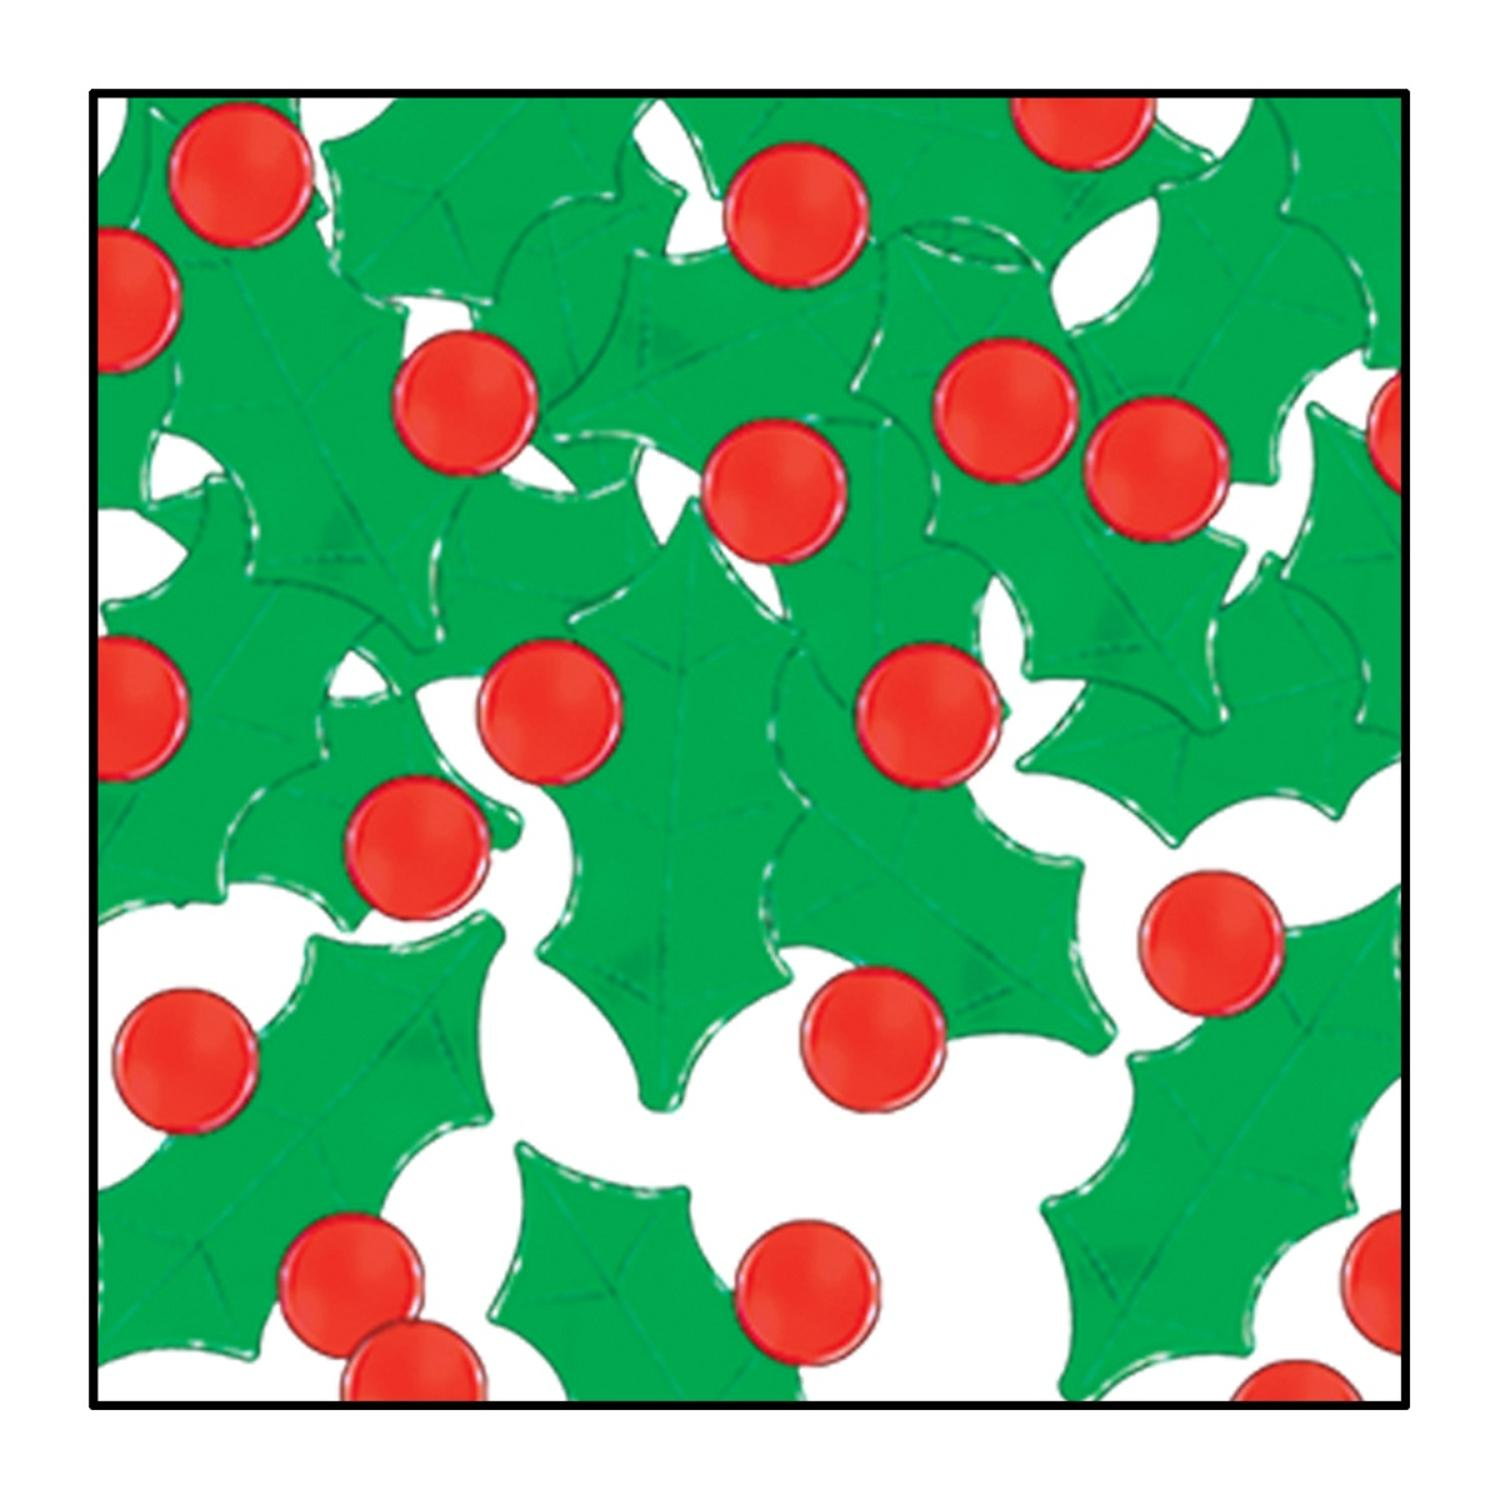 Club Pack of 12 Red and Green Fanci-Fetti Holly and Berry Christmas Celebration Confetti Bags 1 oz.